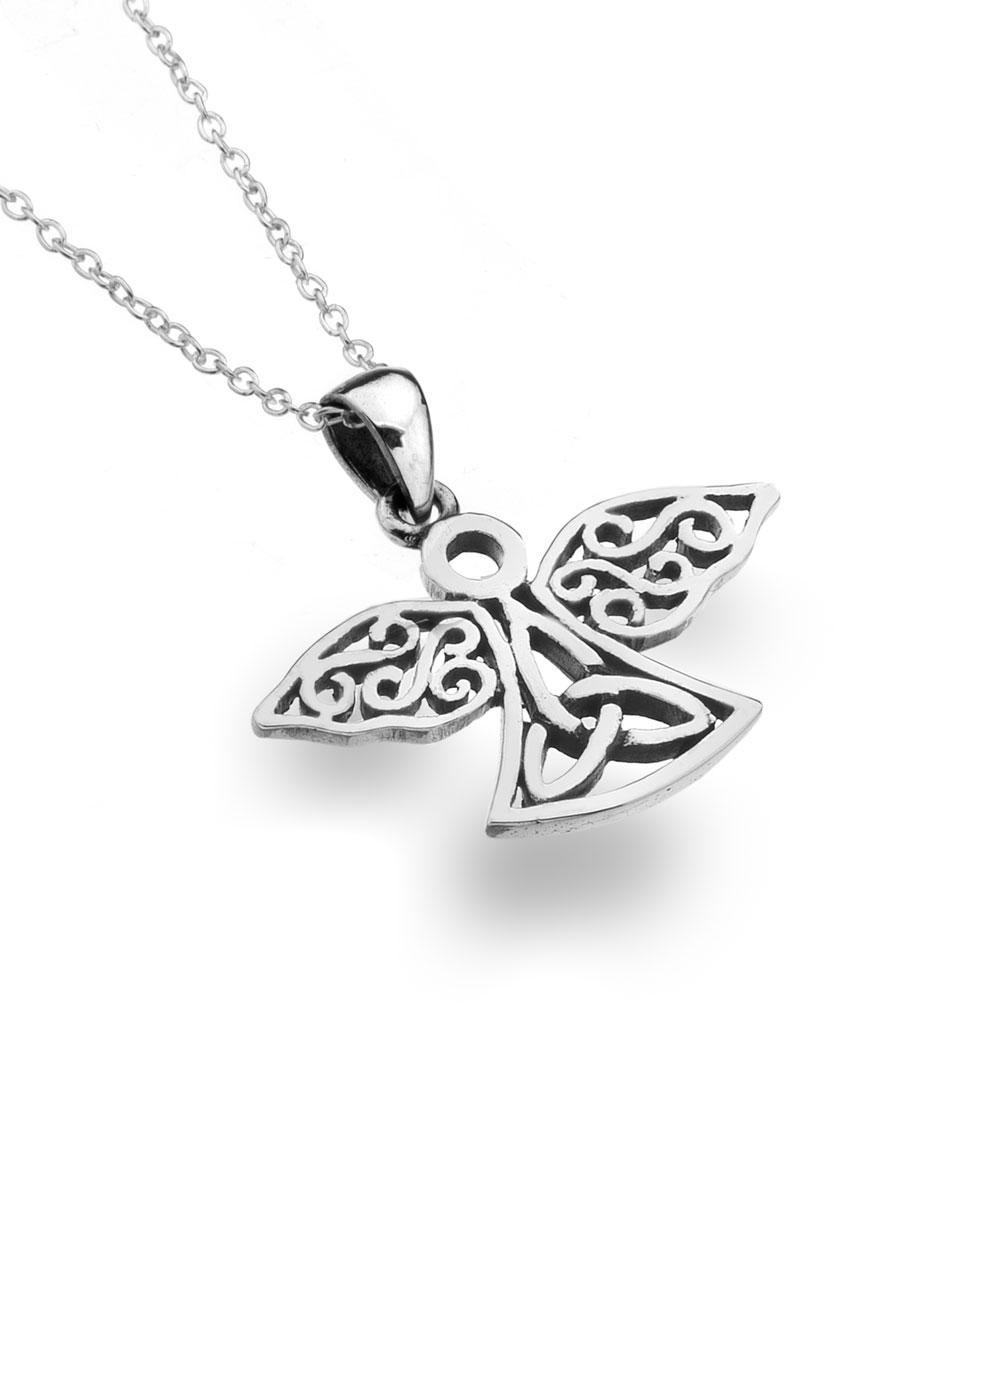 Sterling silver celtic angel pendant blarney sterling silver celtic angel pendant aloadofball Gallery